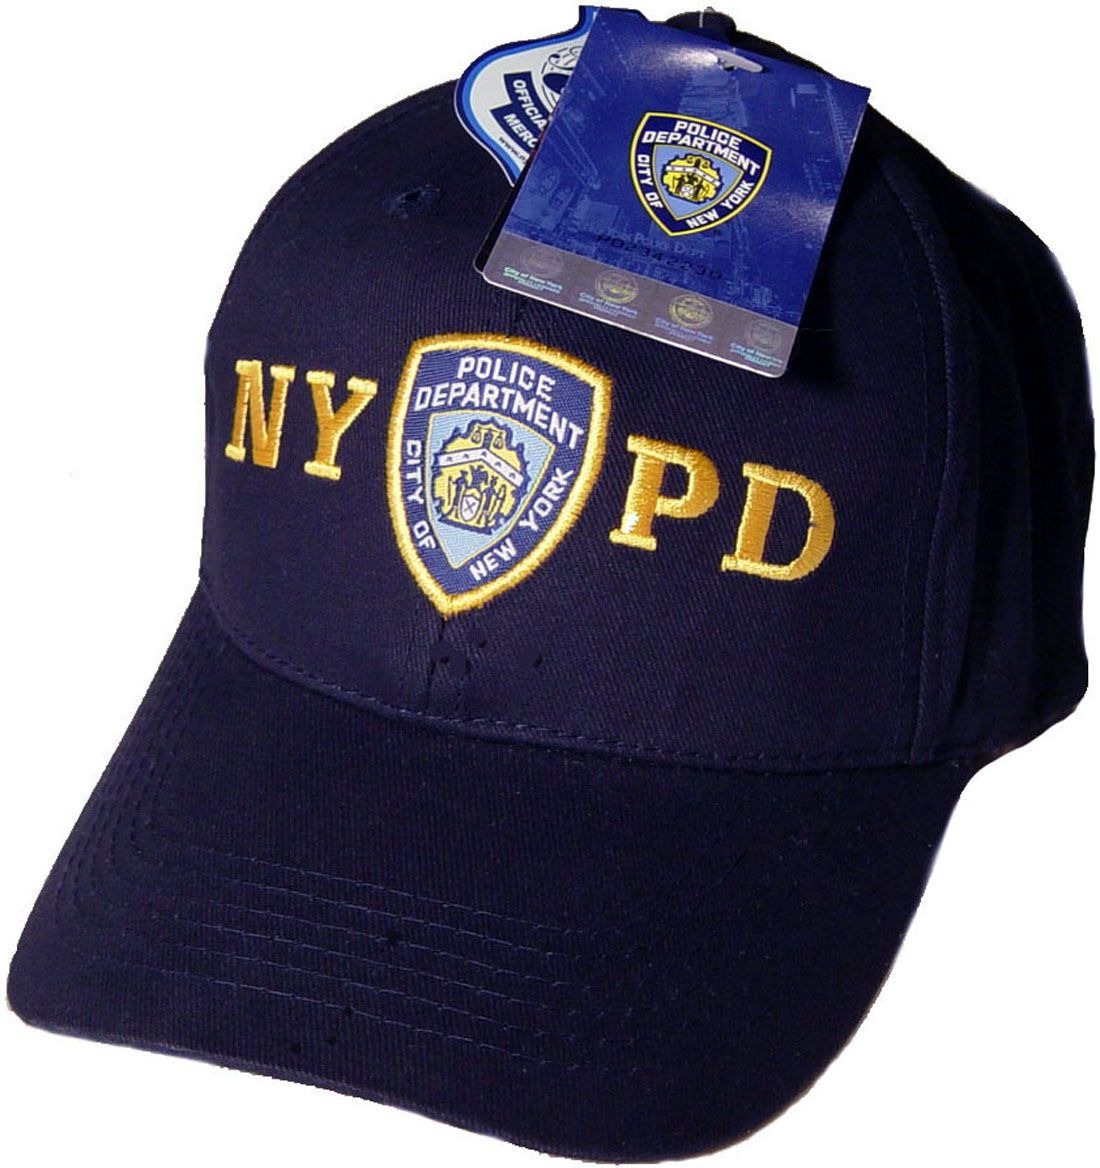 Nypd Baseball Cap Hat Licensed By The York City Police Department ... 910167cf208